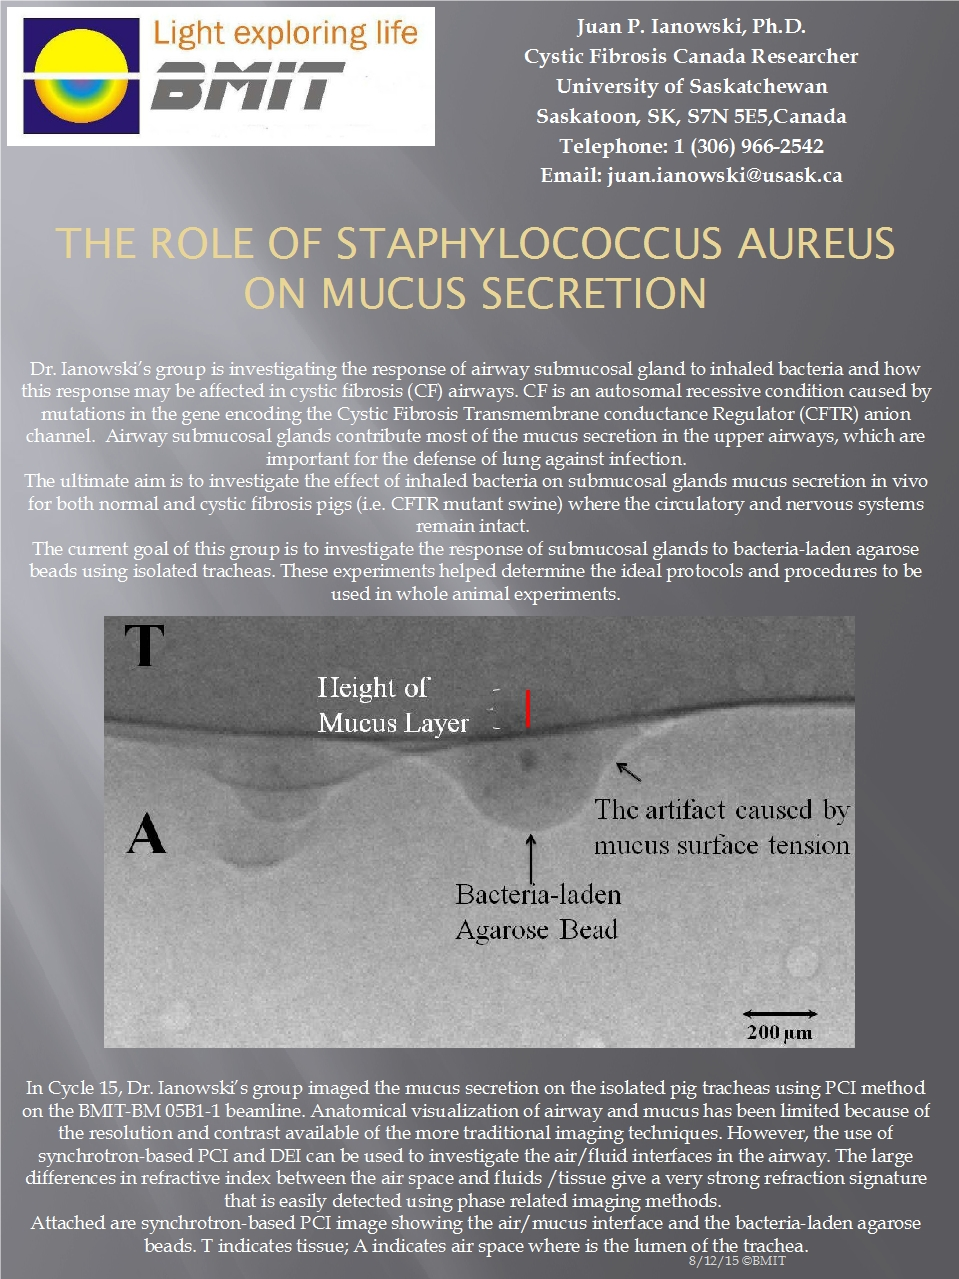 The Role of Staphylococcus Aureus on Mucus Secretion Image